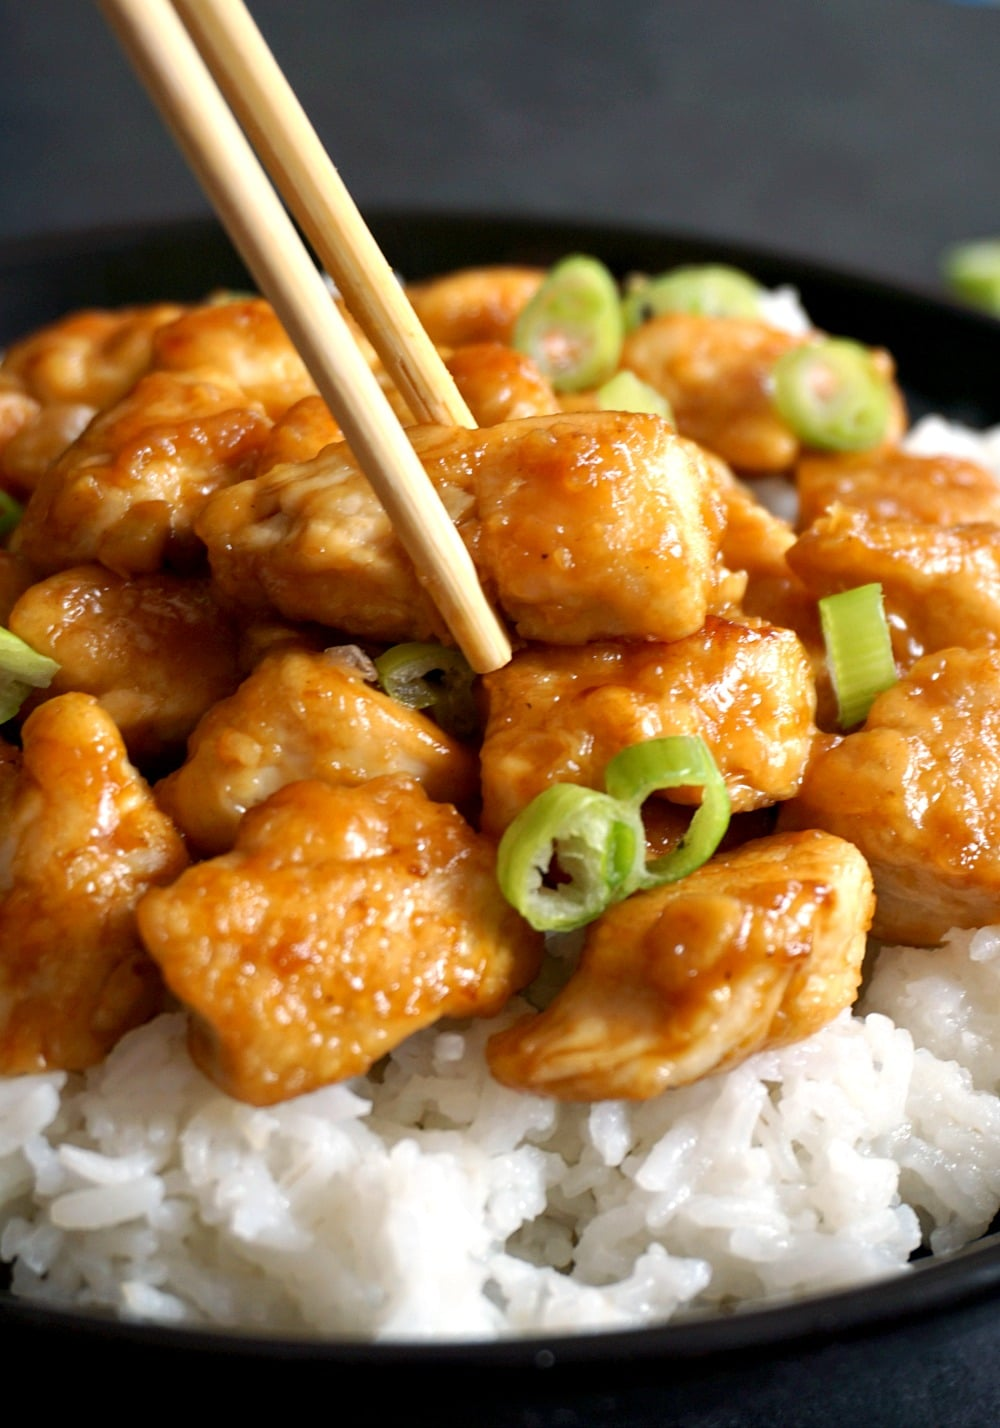 Easy orange chicken recipe, one of my top 10 Chinese dishes that l could have any time. Tender chicken coated in a zesty orange sauce and garnished with spring onion. Ready in under 15 minutes. Serve with rice, and you have the most delicious dinner recipe.